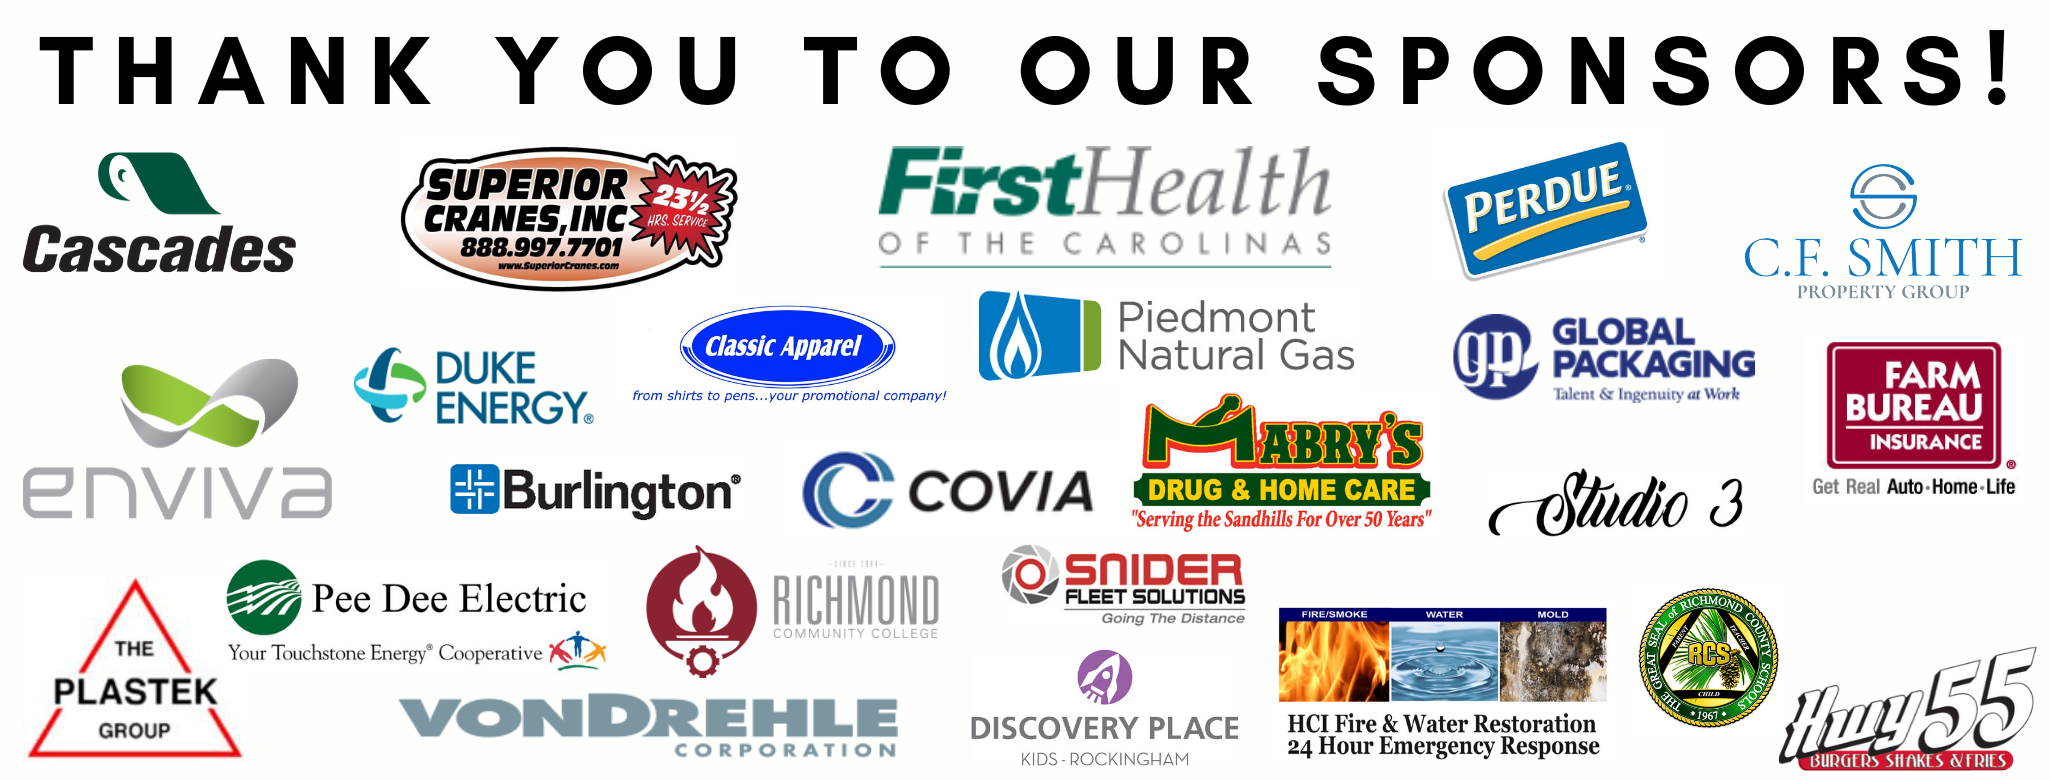 Thank you to our sponsors! (1)